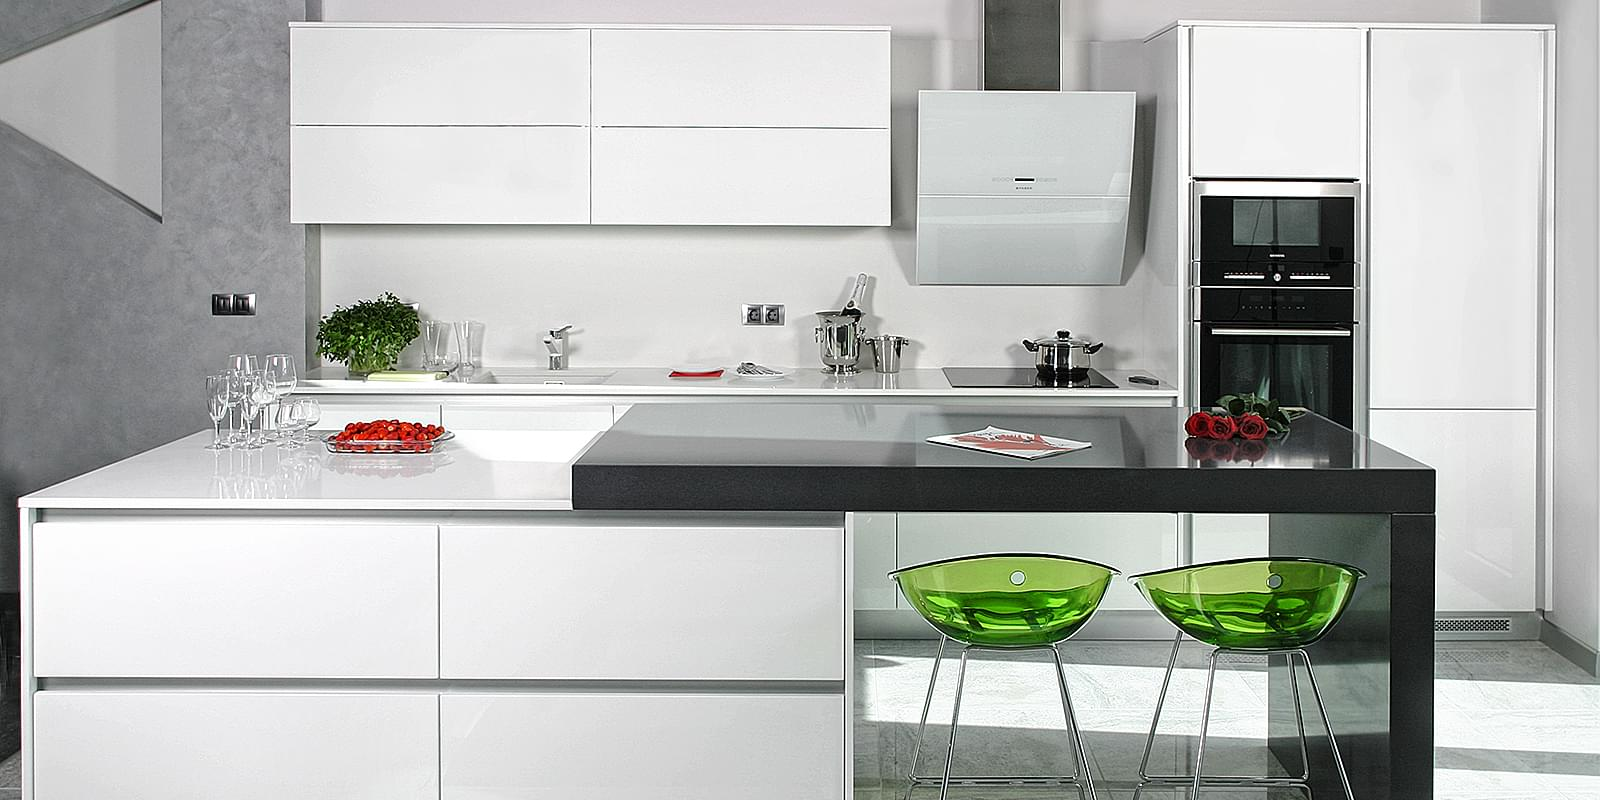 Dialog kitchens modern kitchens for Model kitchen design